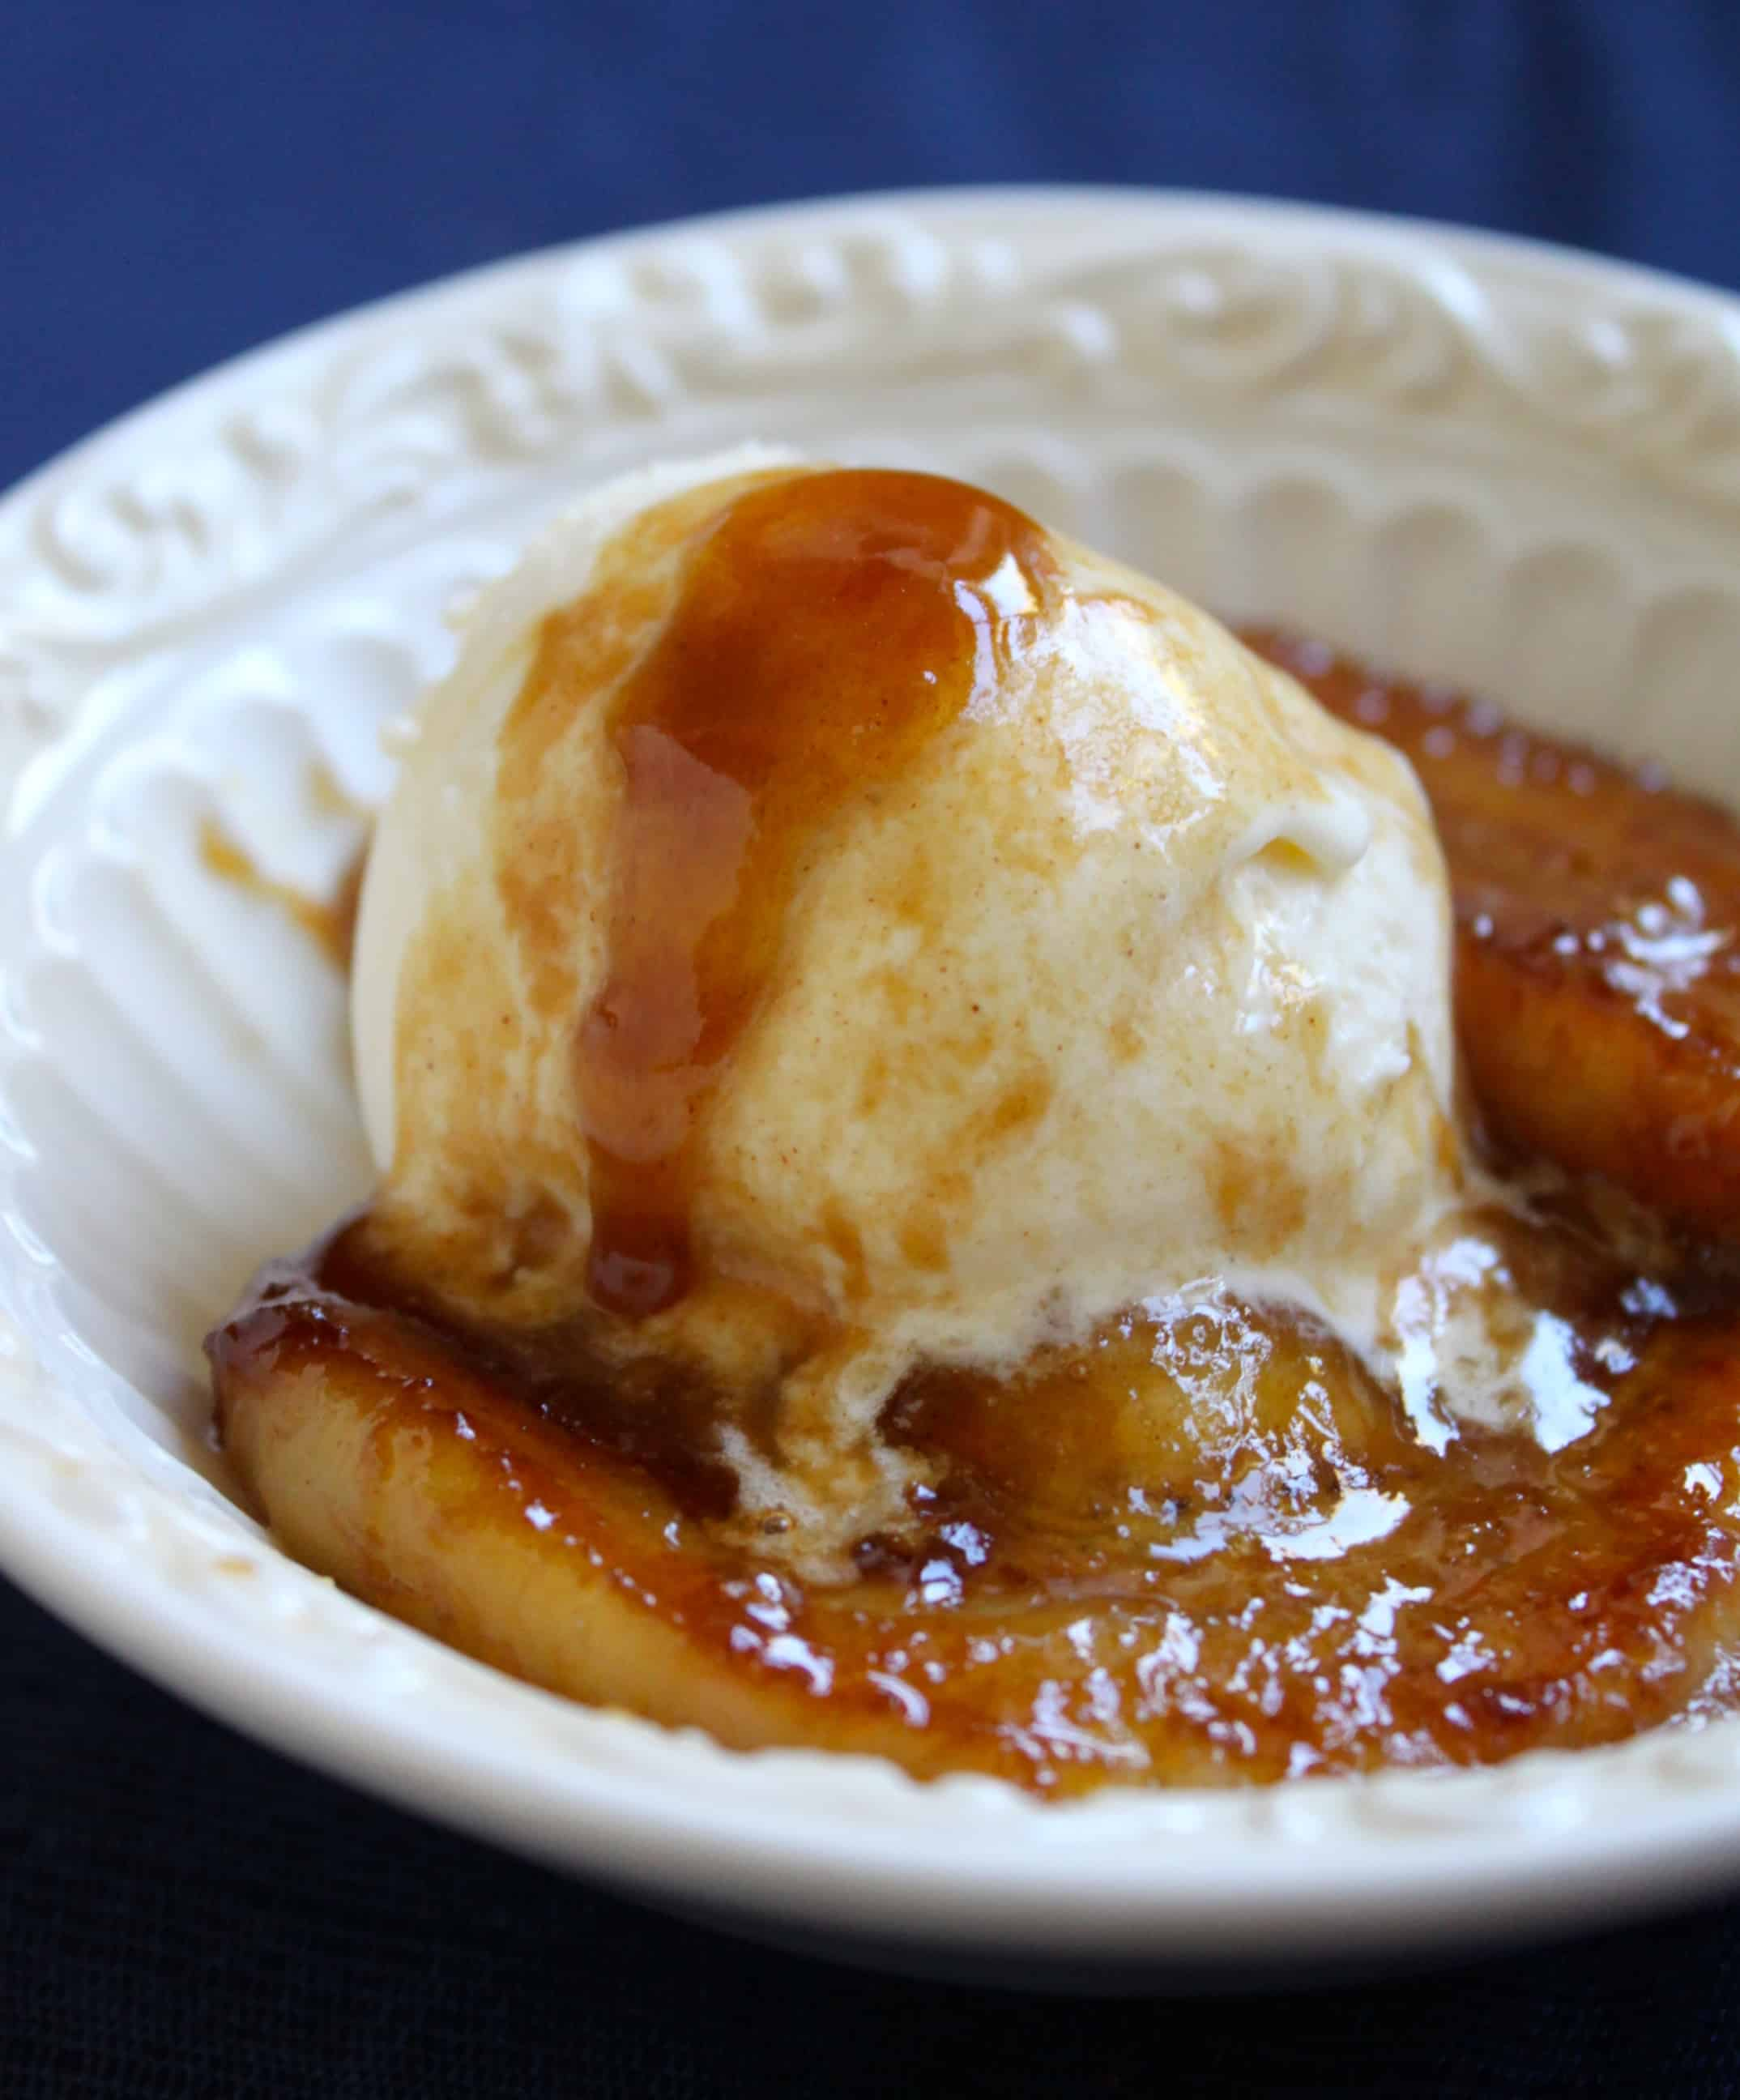 caramelized rum bananas with ice cream